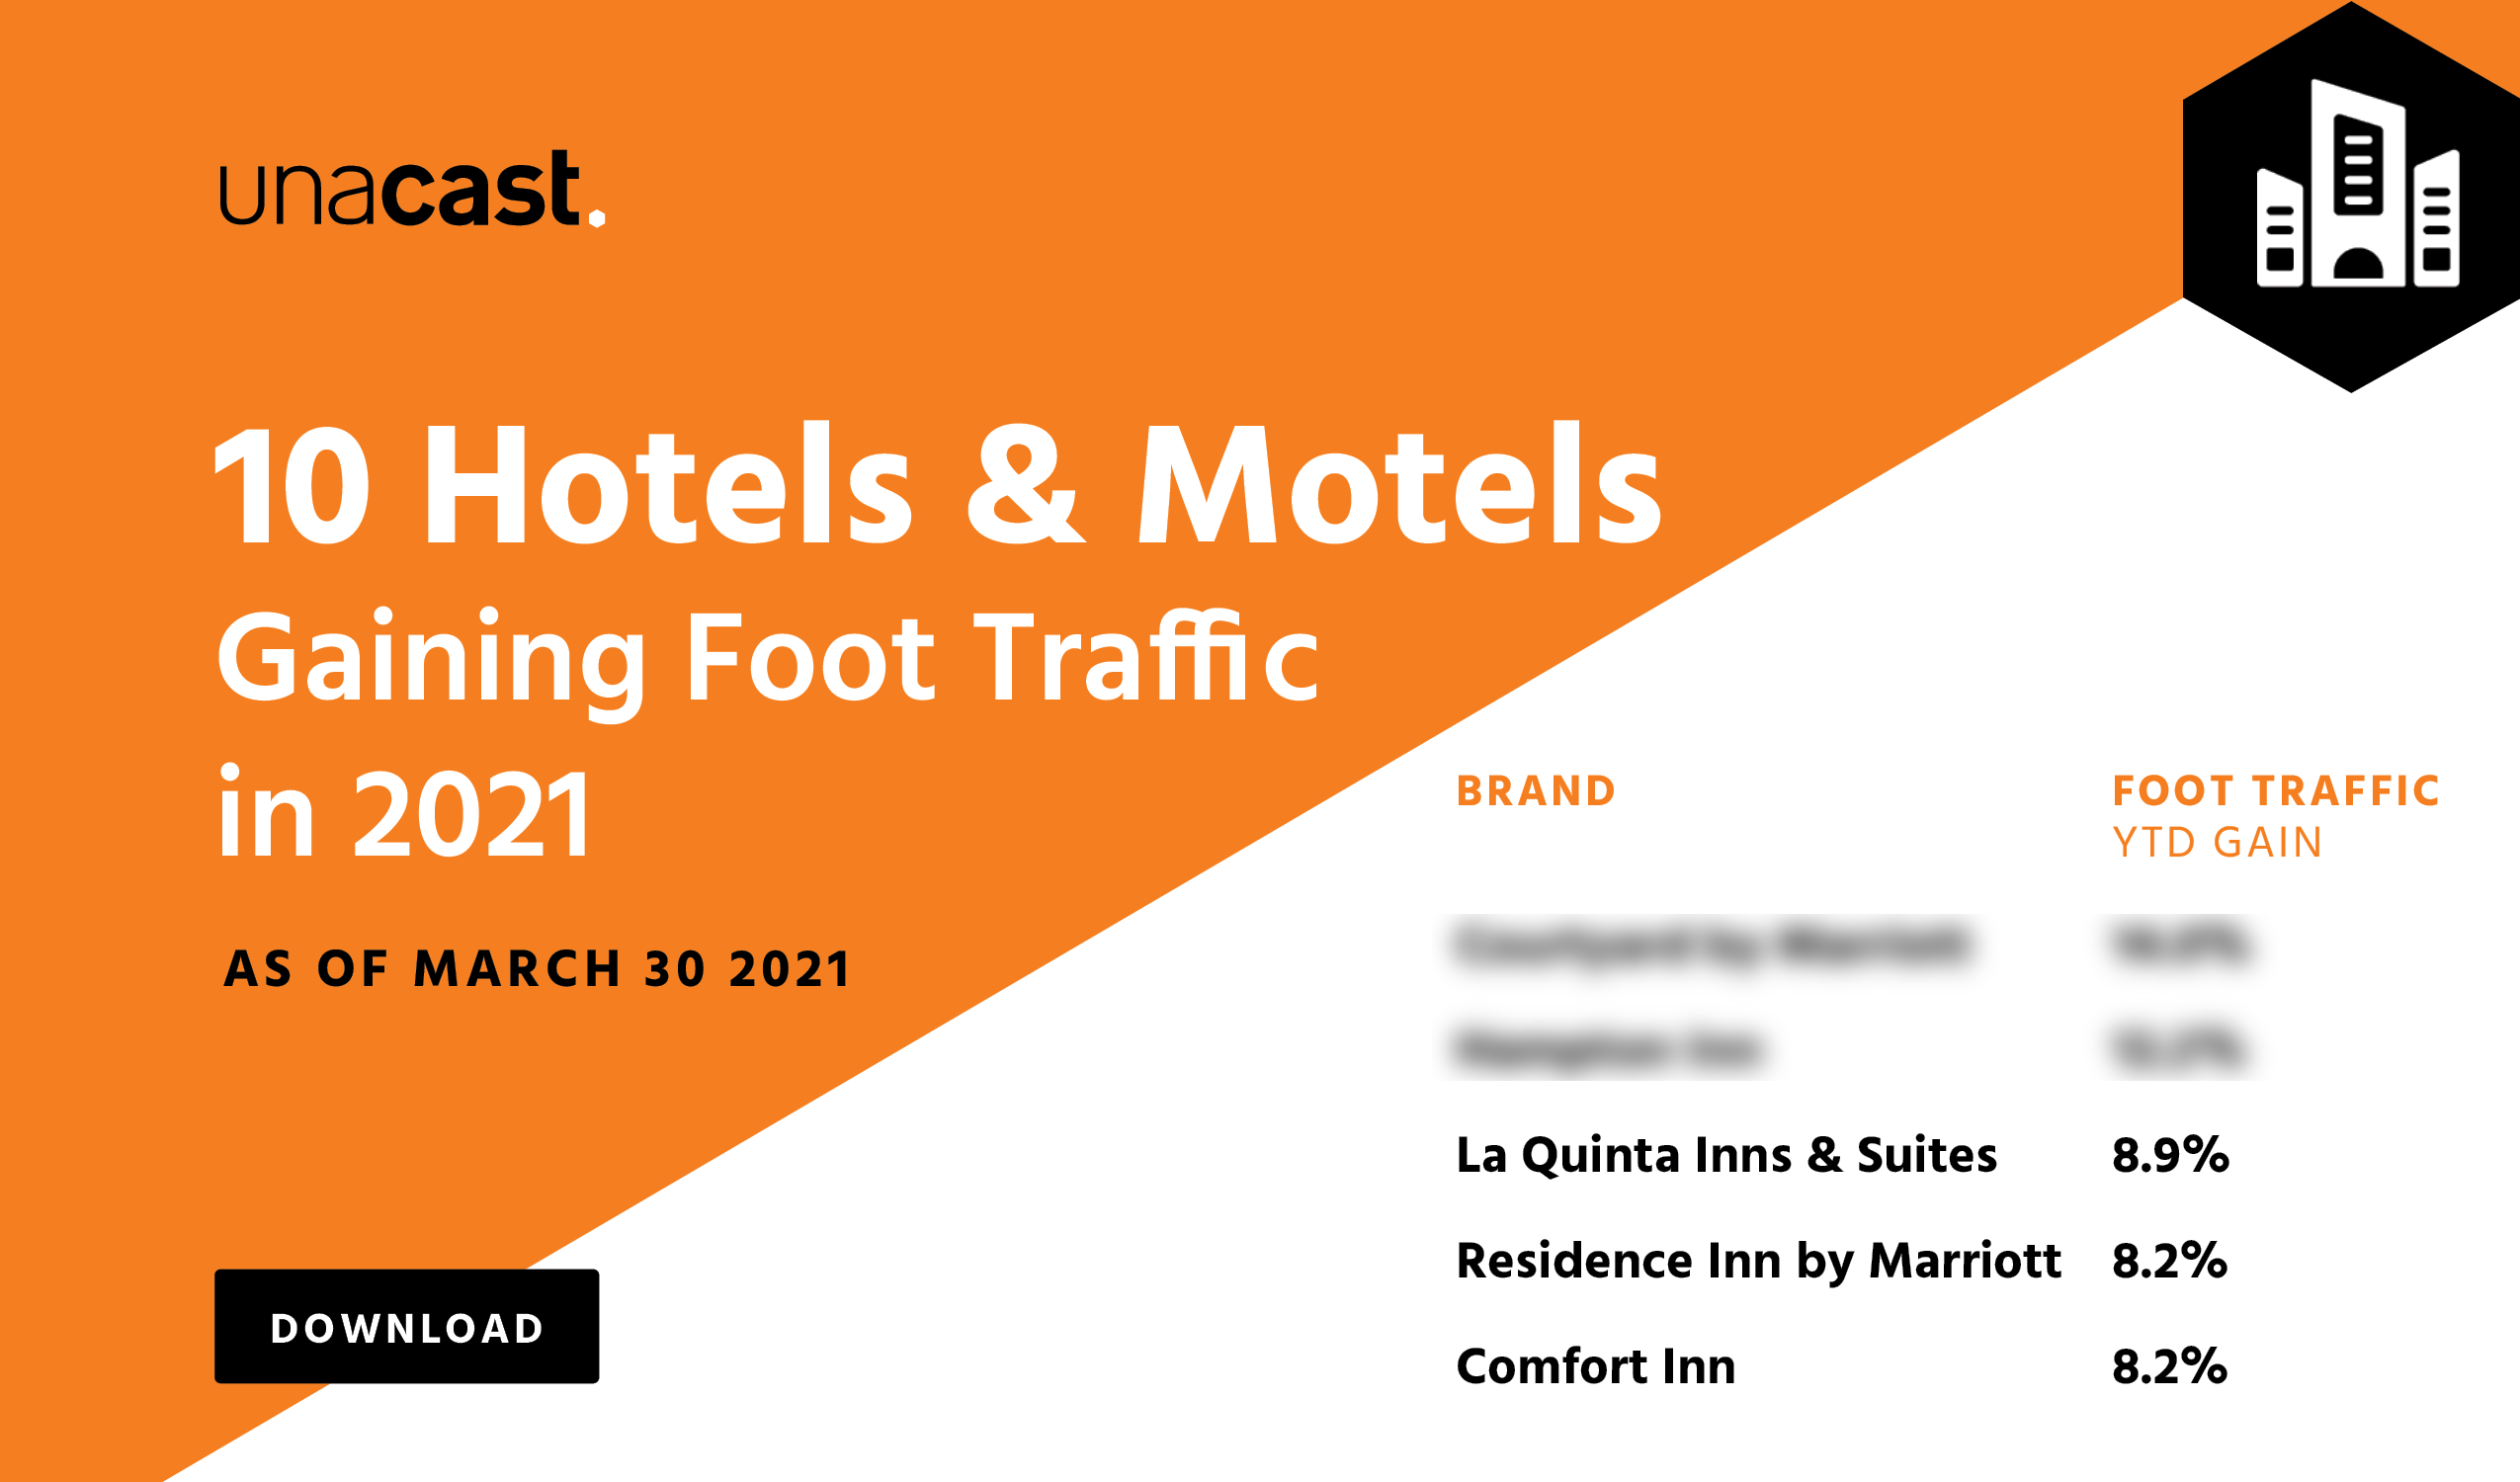 10 Hotels and Motels gaining Foot Traffic